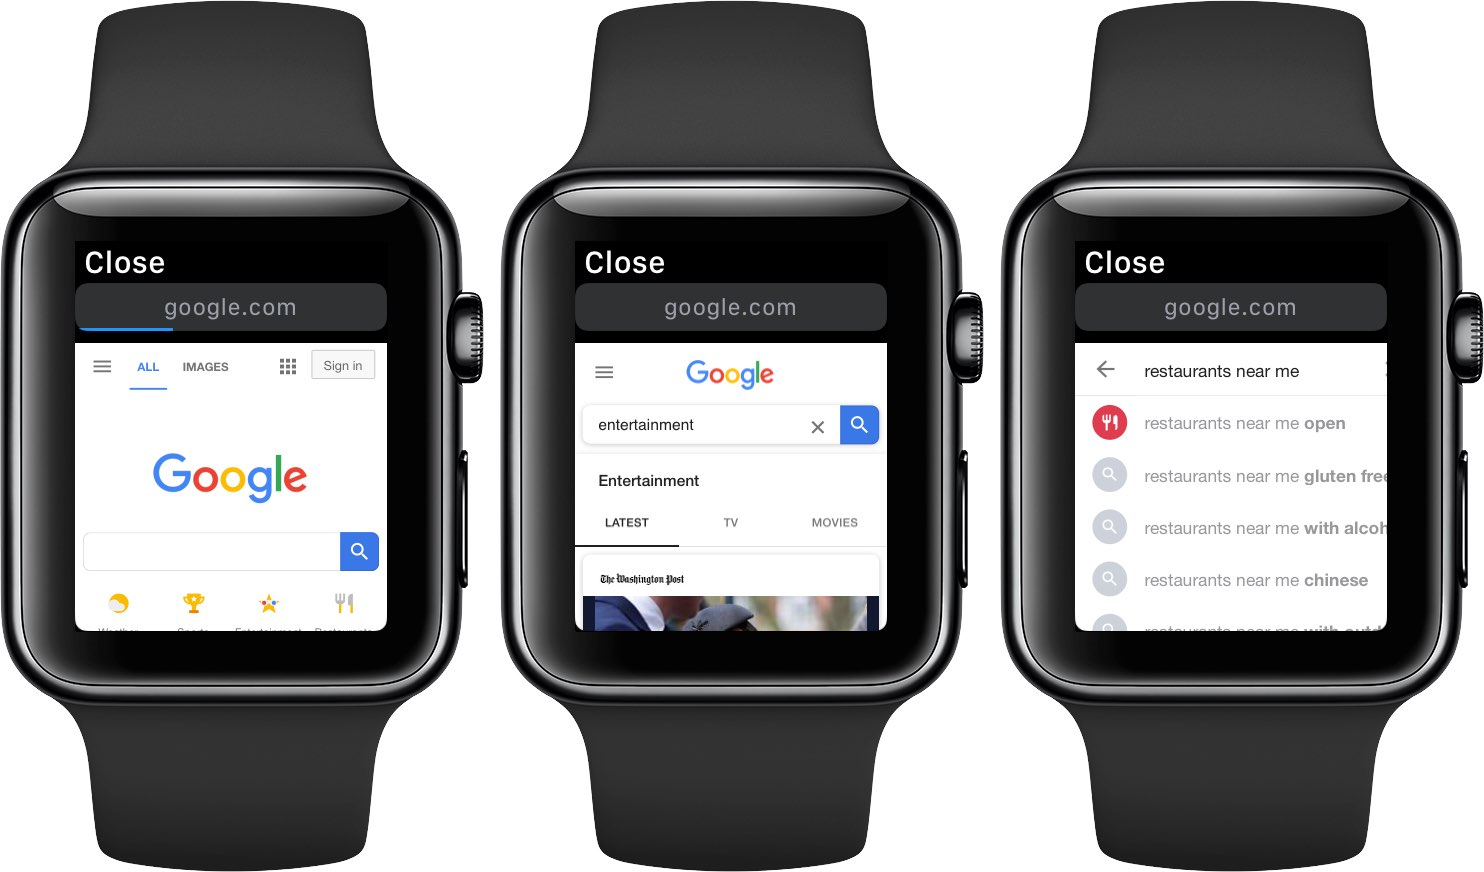 Browsing the web with Google on watchOS 5